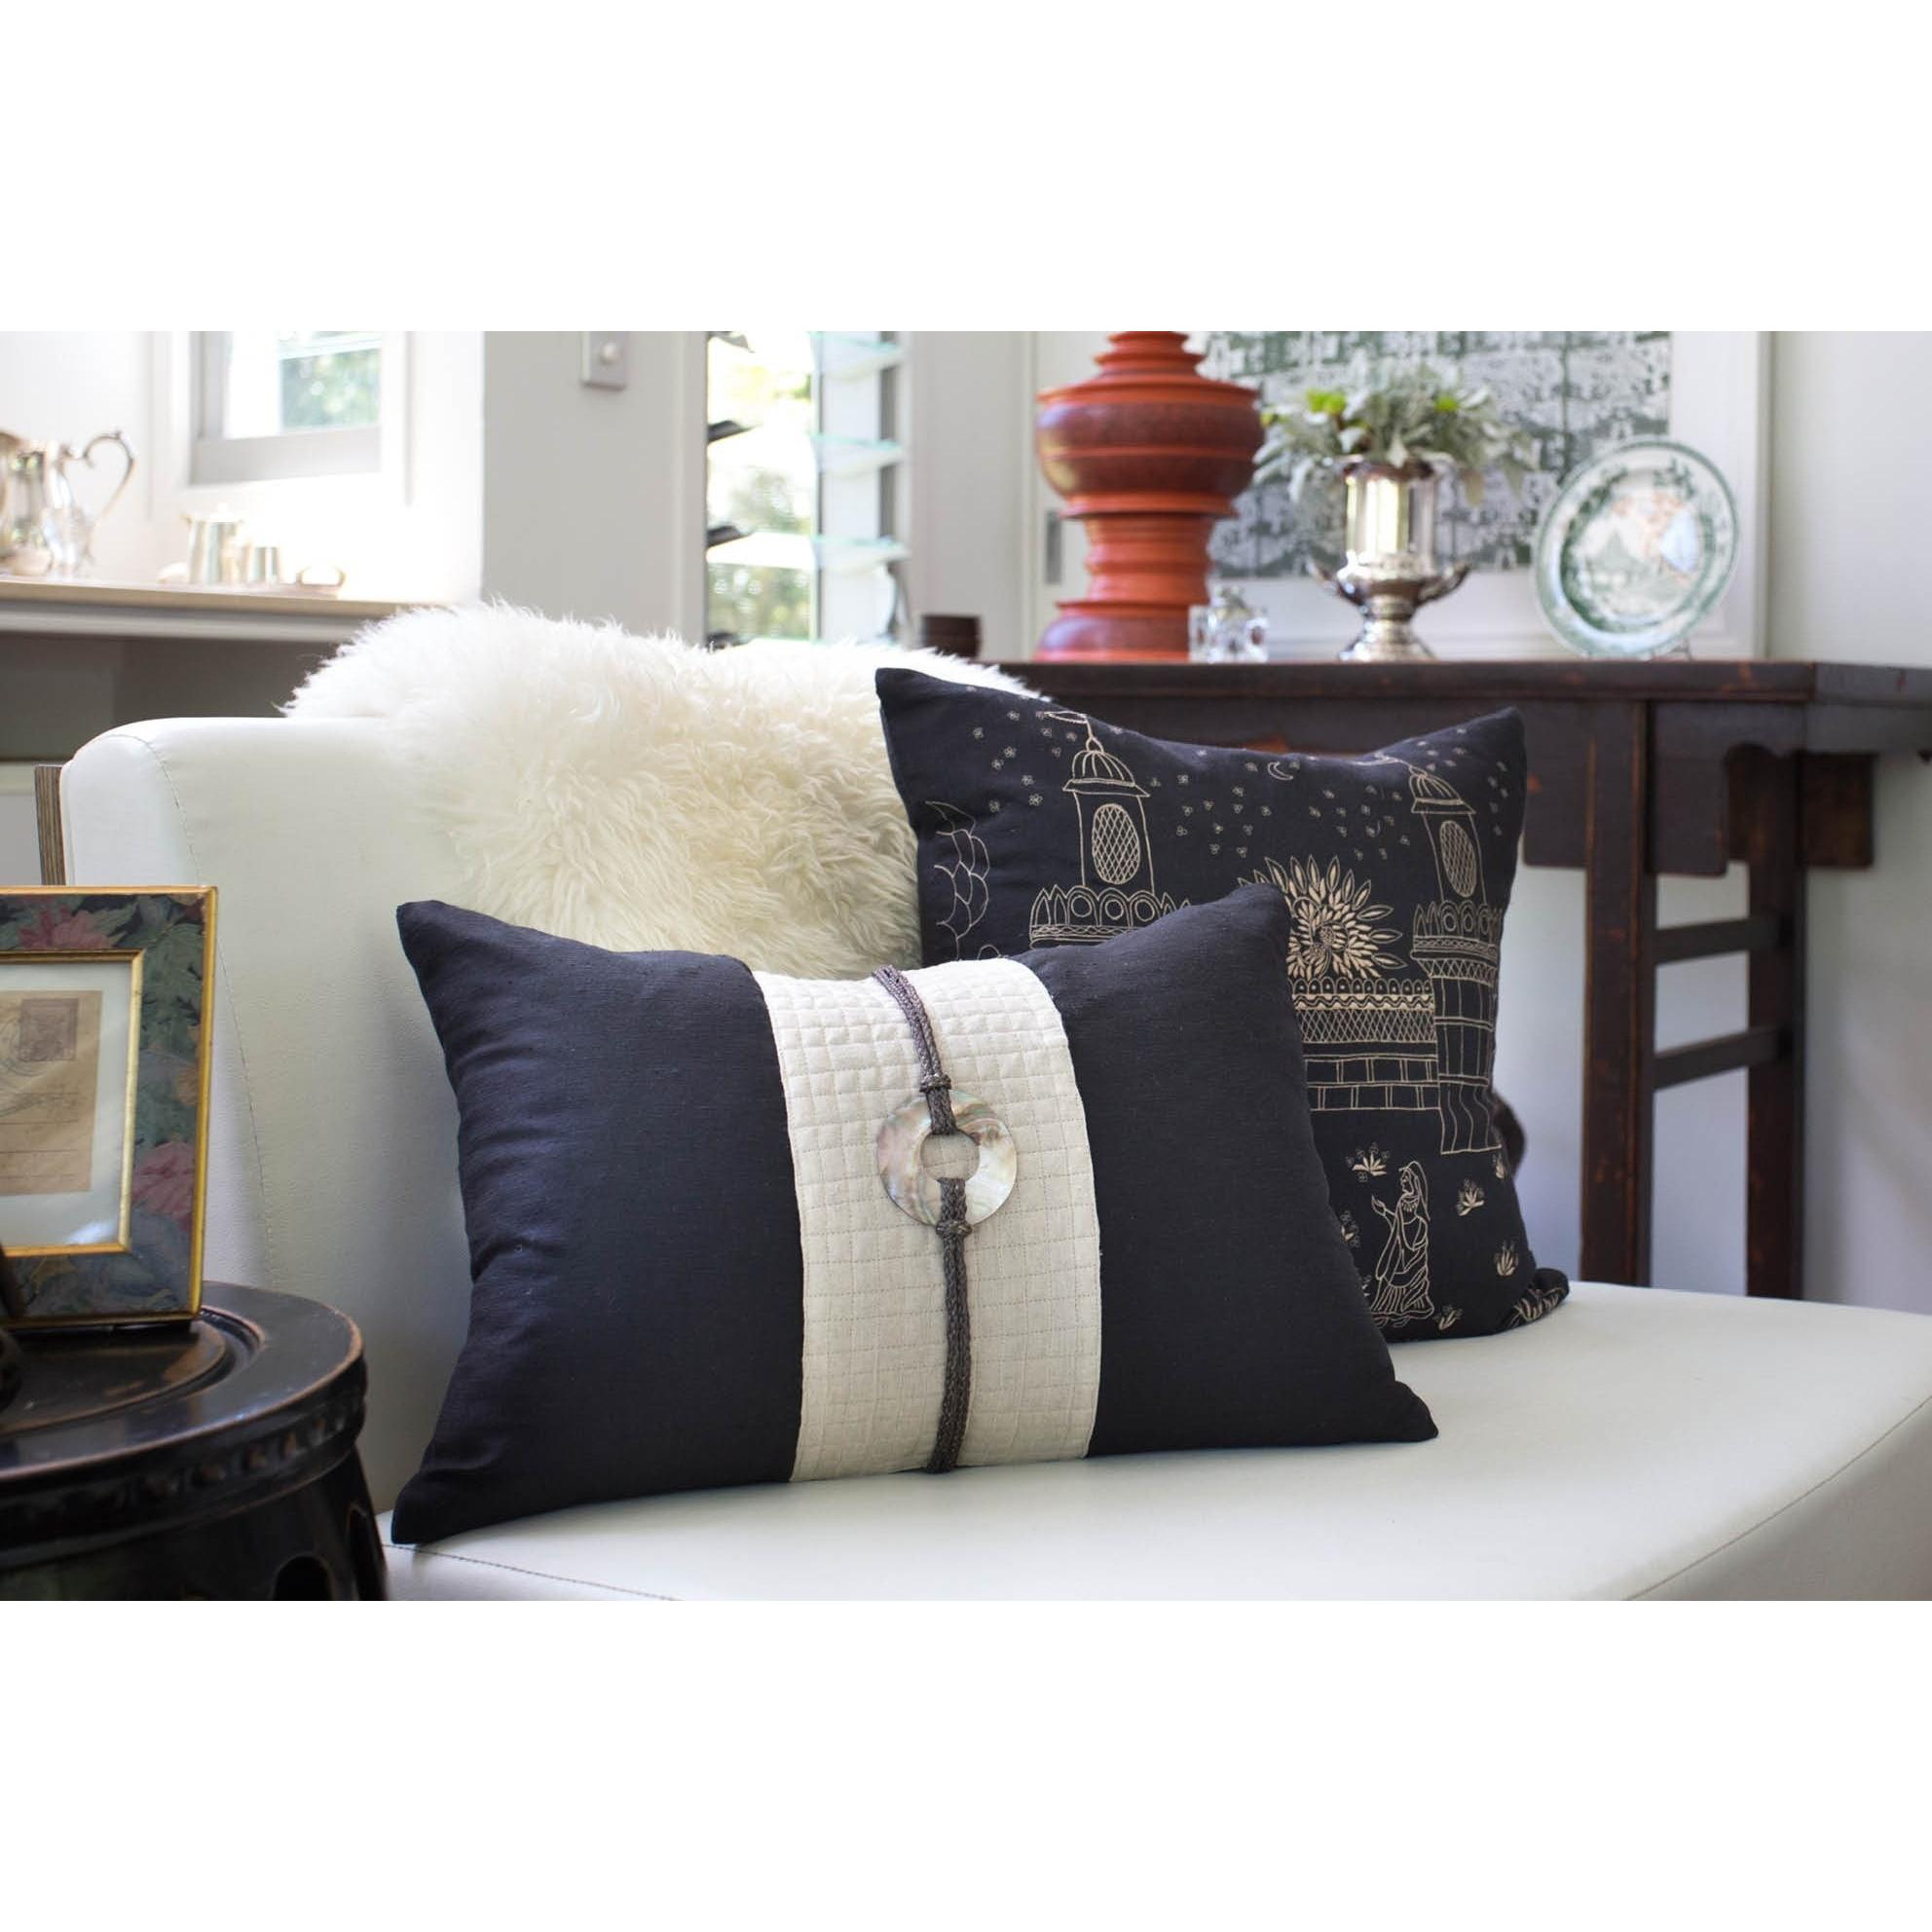 Bandhini Homewear Design Lumber Cushion Black / 14 x 21 Shell Sash Linen Black Lumber Cushion 35 x 53 cm